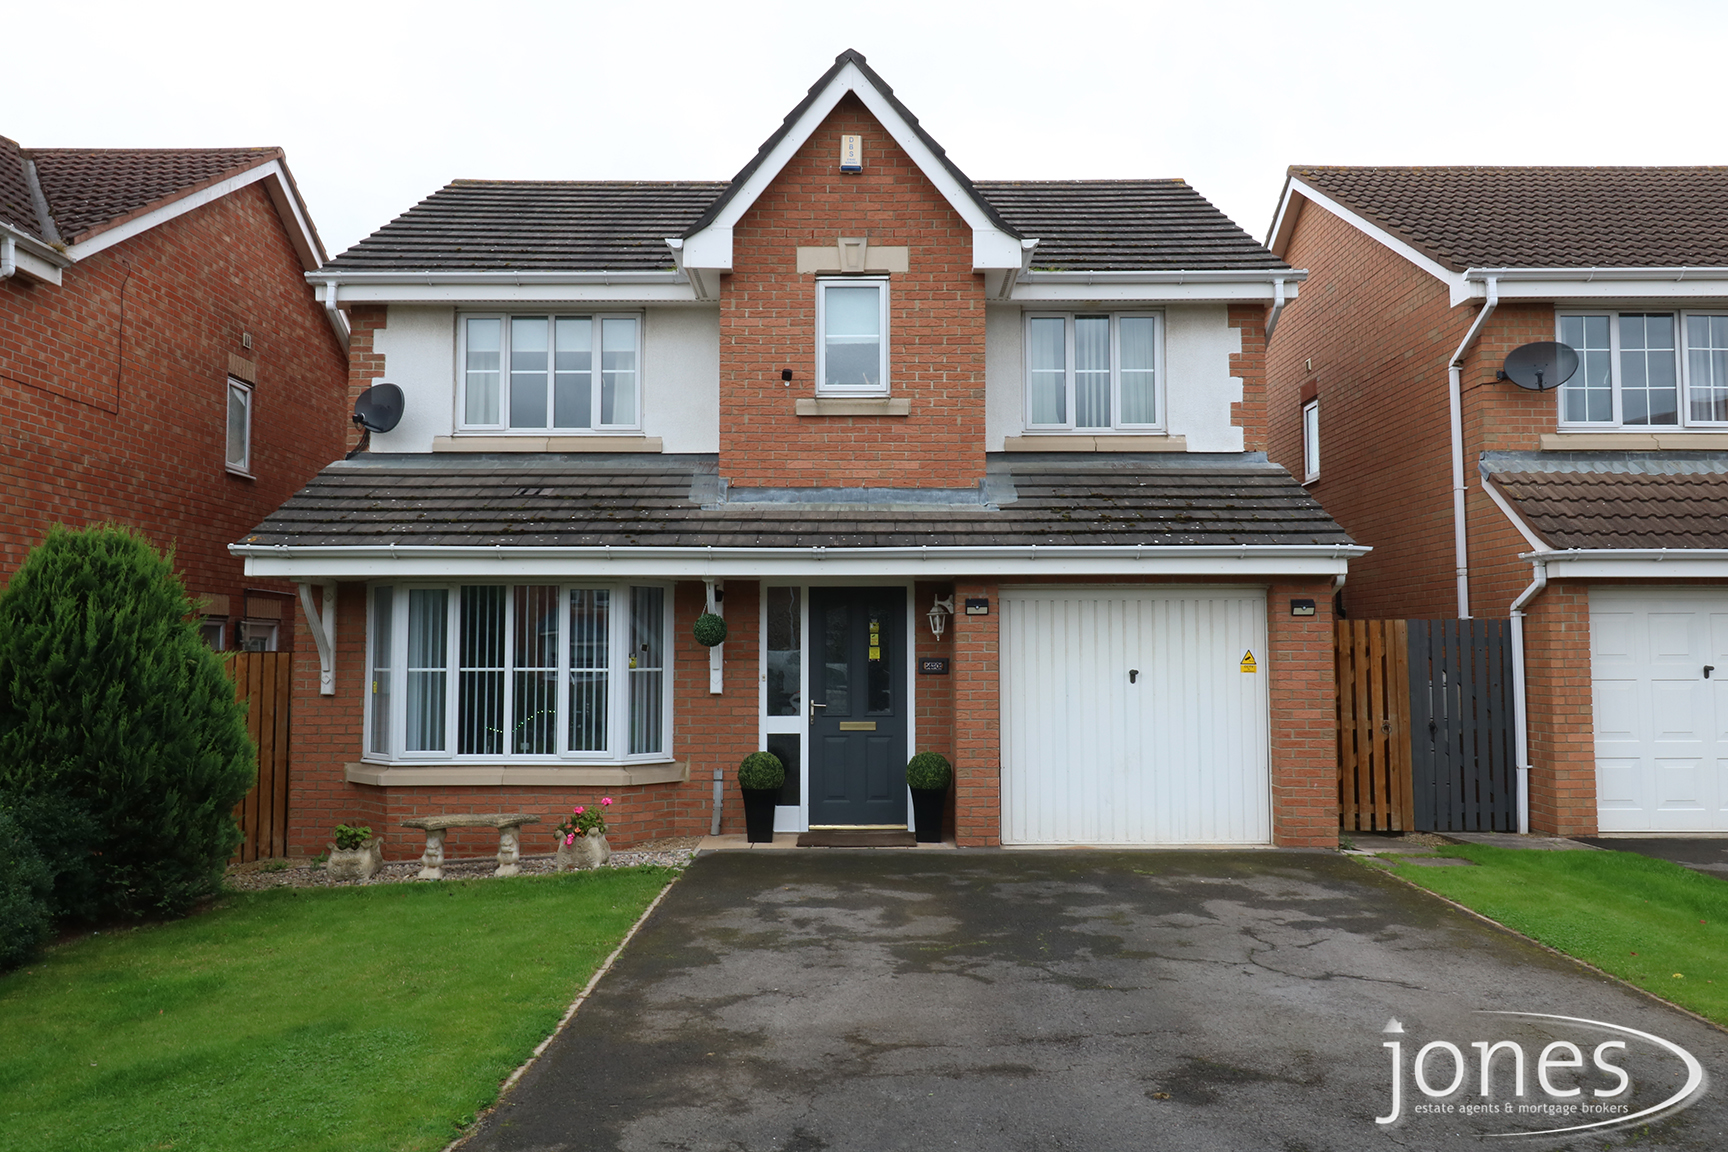 Home for Sale Let - Photo 01 West End Way , Low Hartburn,Stockton on Tees,TS18 3UA